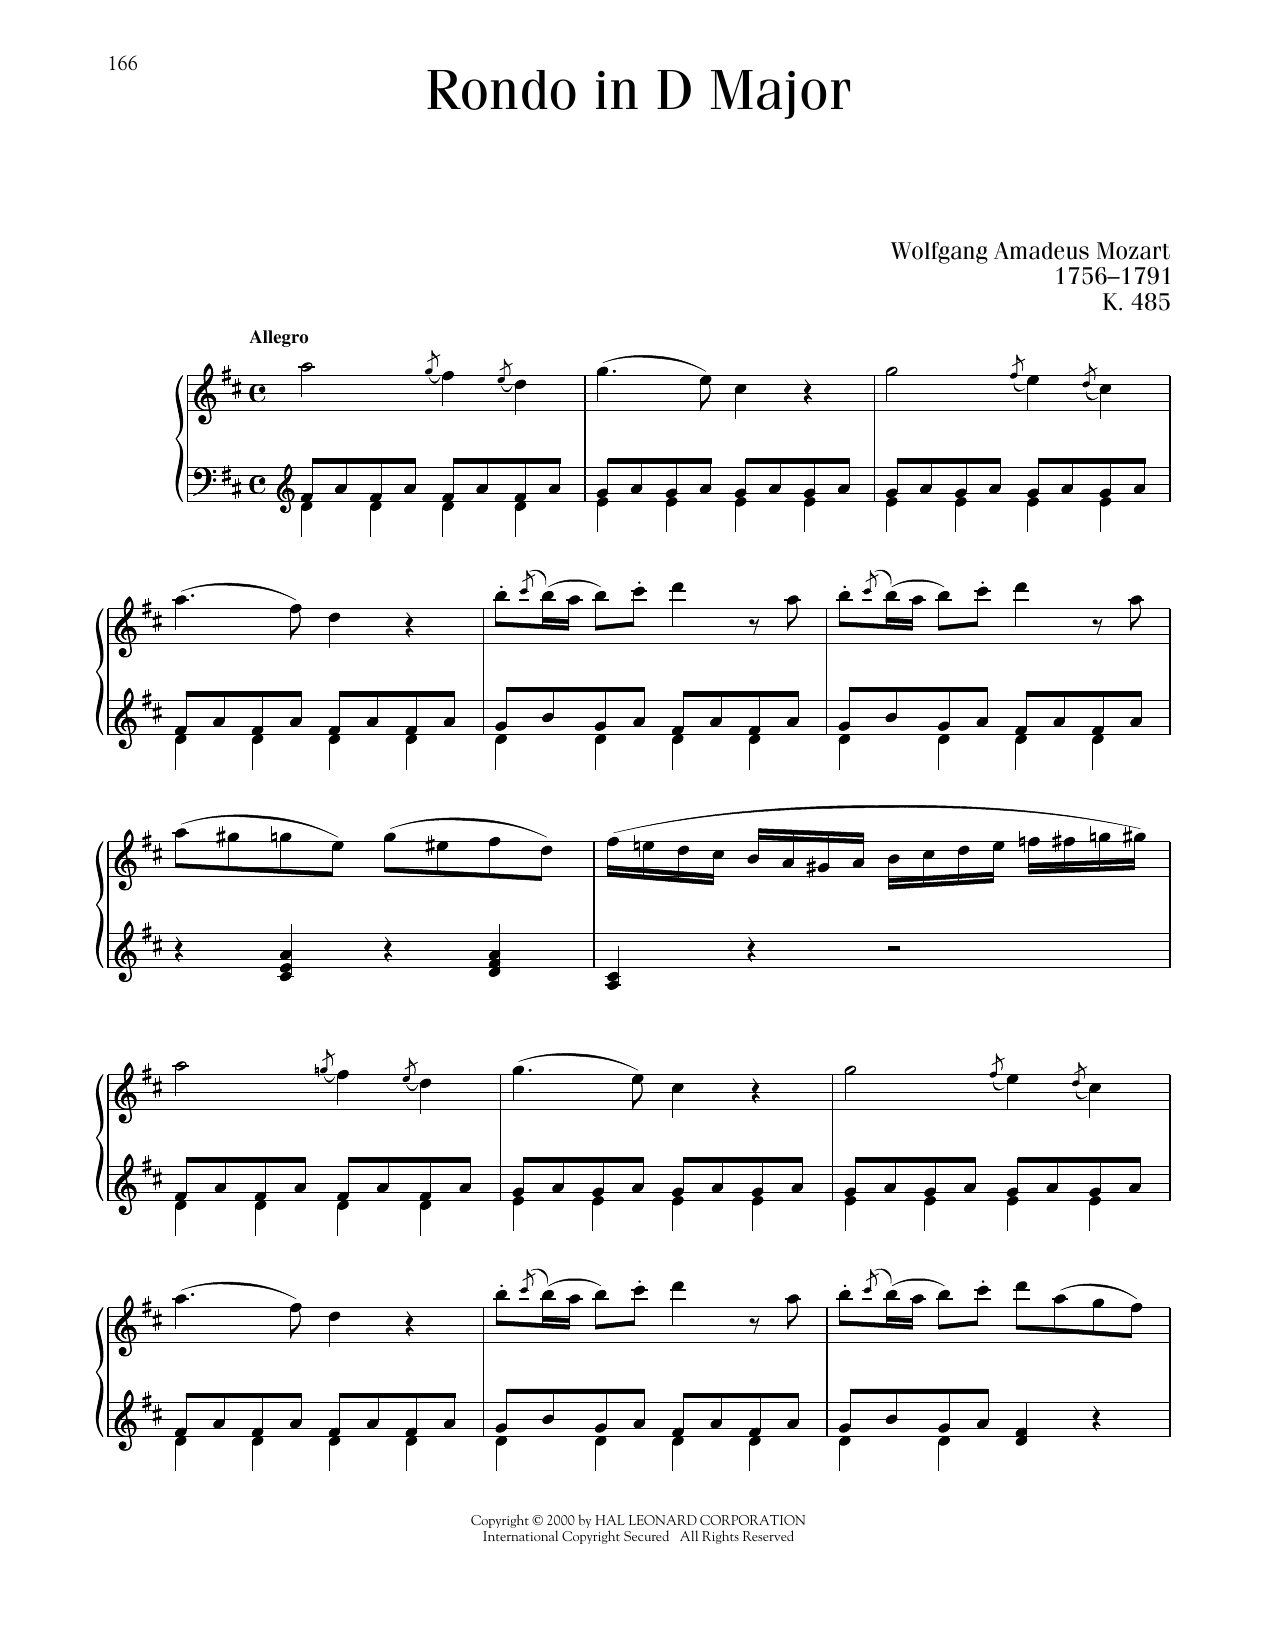 Wolfgang Amadeus Mozart Rondo In D Major, K. 485 sheet music notes and chords. Download Printable PDF.